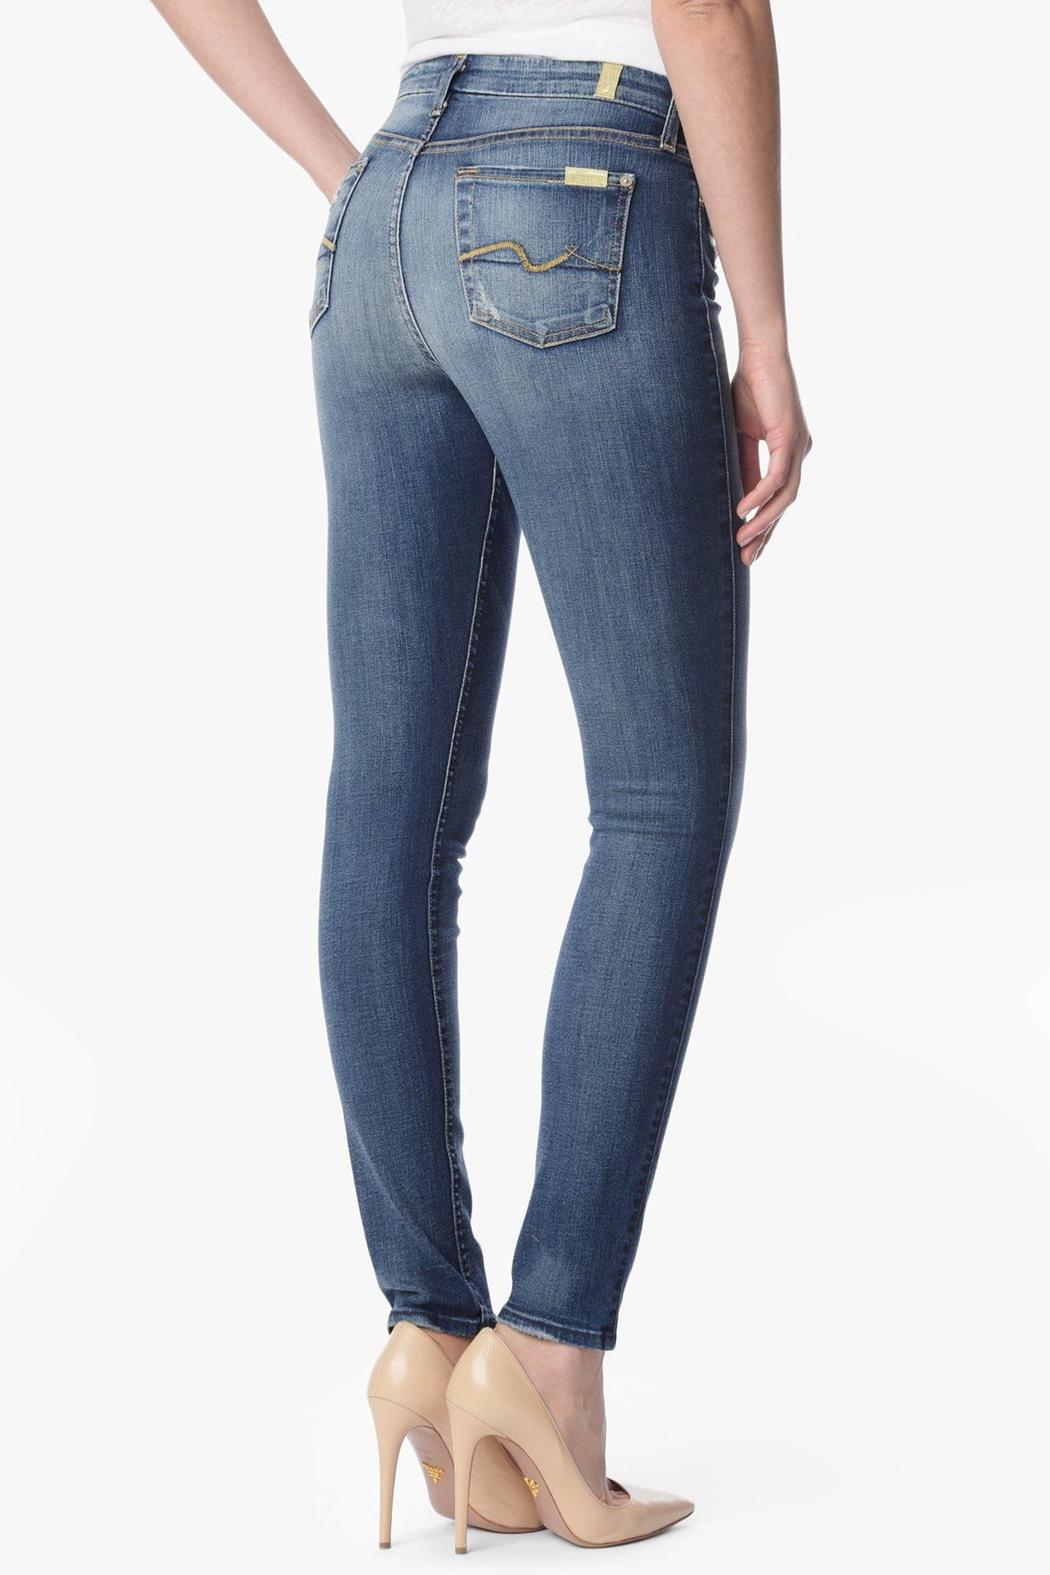 7 For all Mankind Midrise Skinny Authentic-Light - Front Full Image